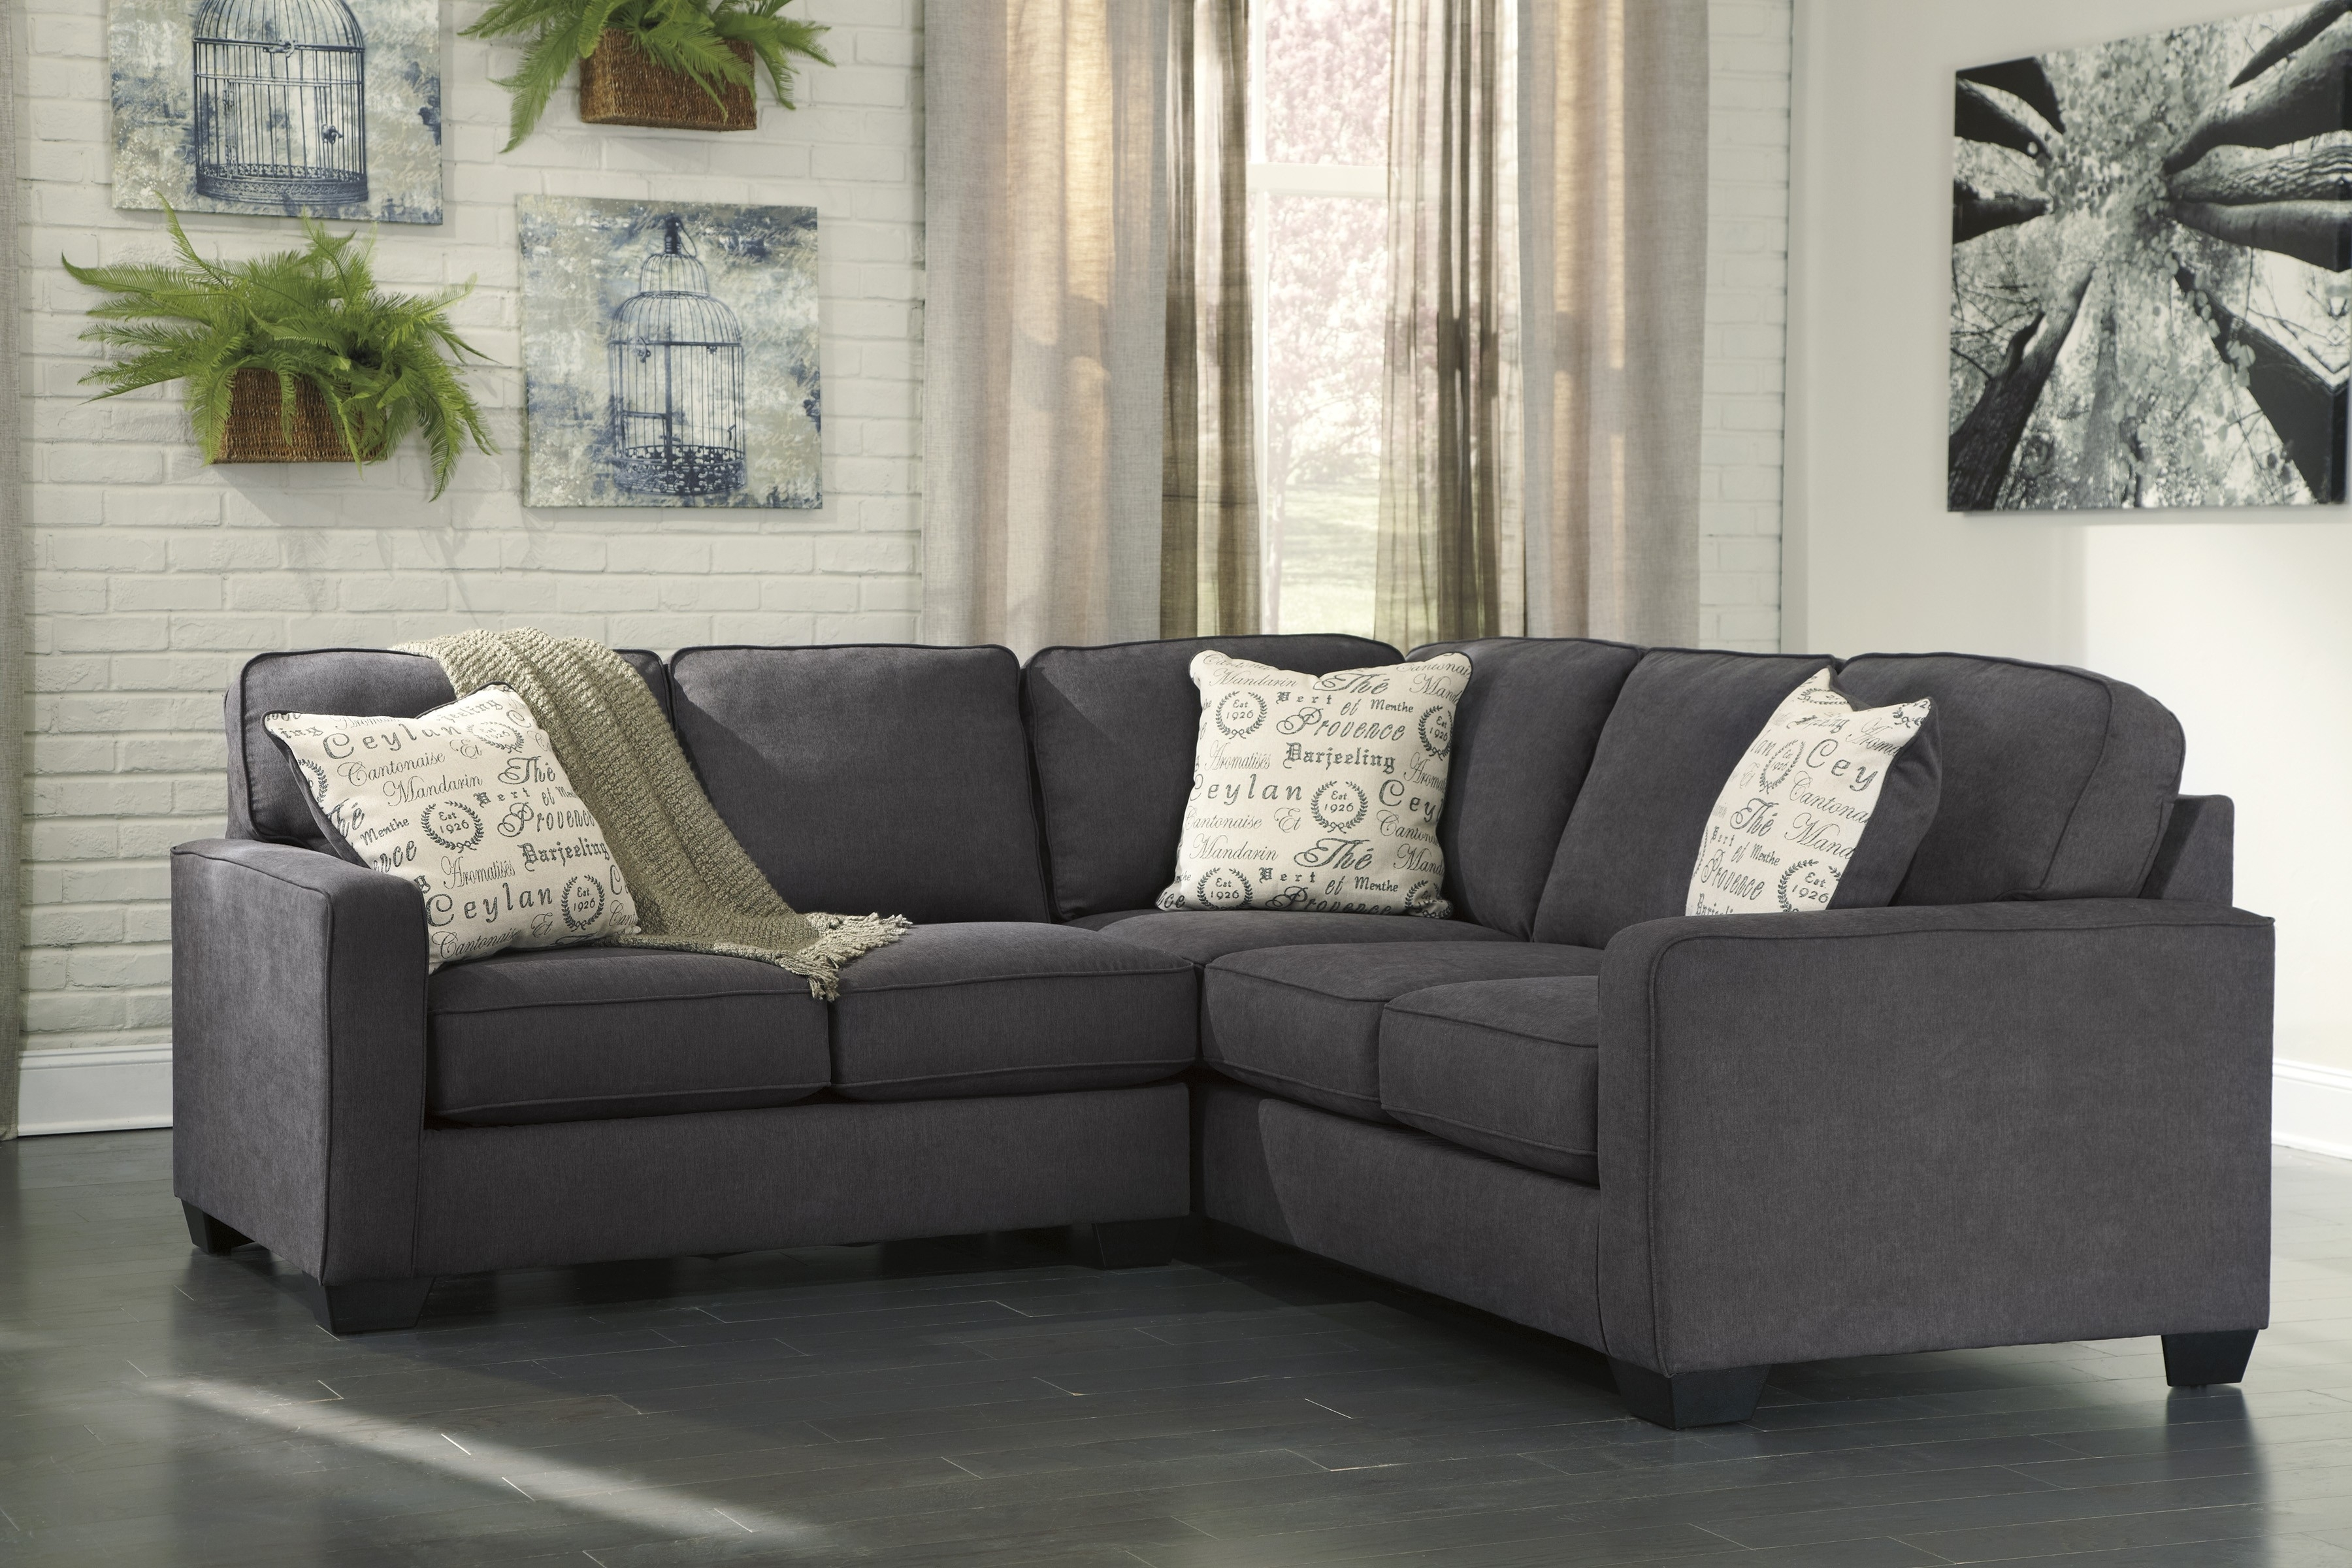 Alenya Charcoal 2 Piece Sectional Sofa For $ (Image 2 of 10)